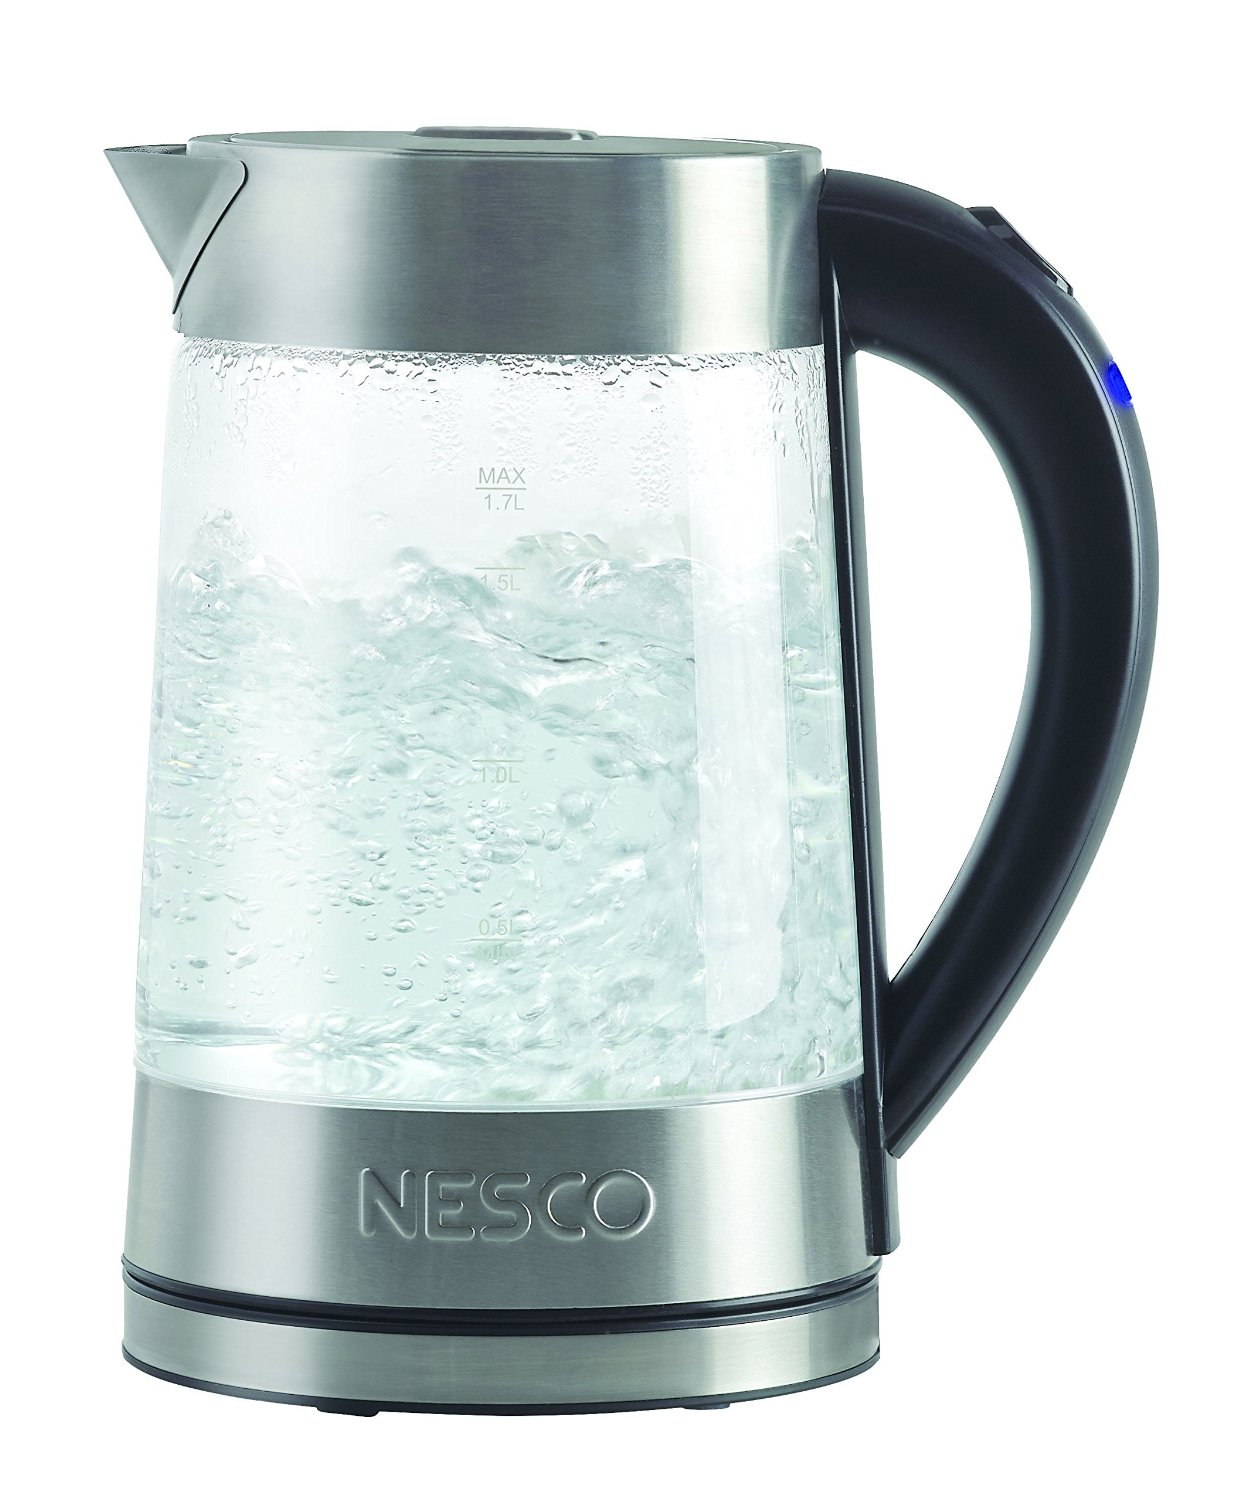 Nesco GWK-02 Electric Glass Water Kettle, 1.8-Quart